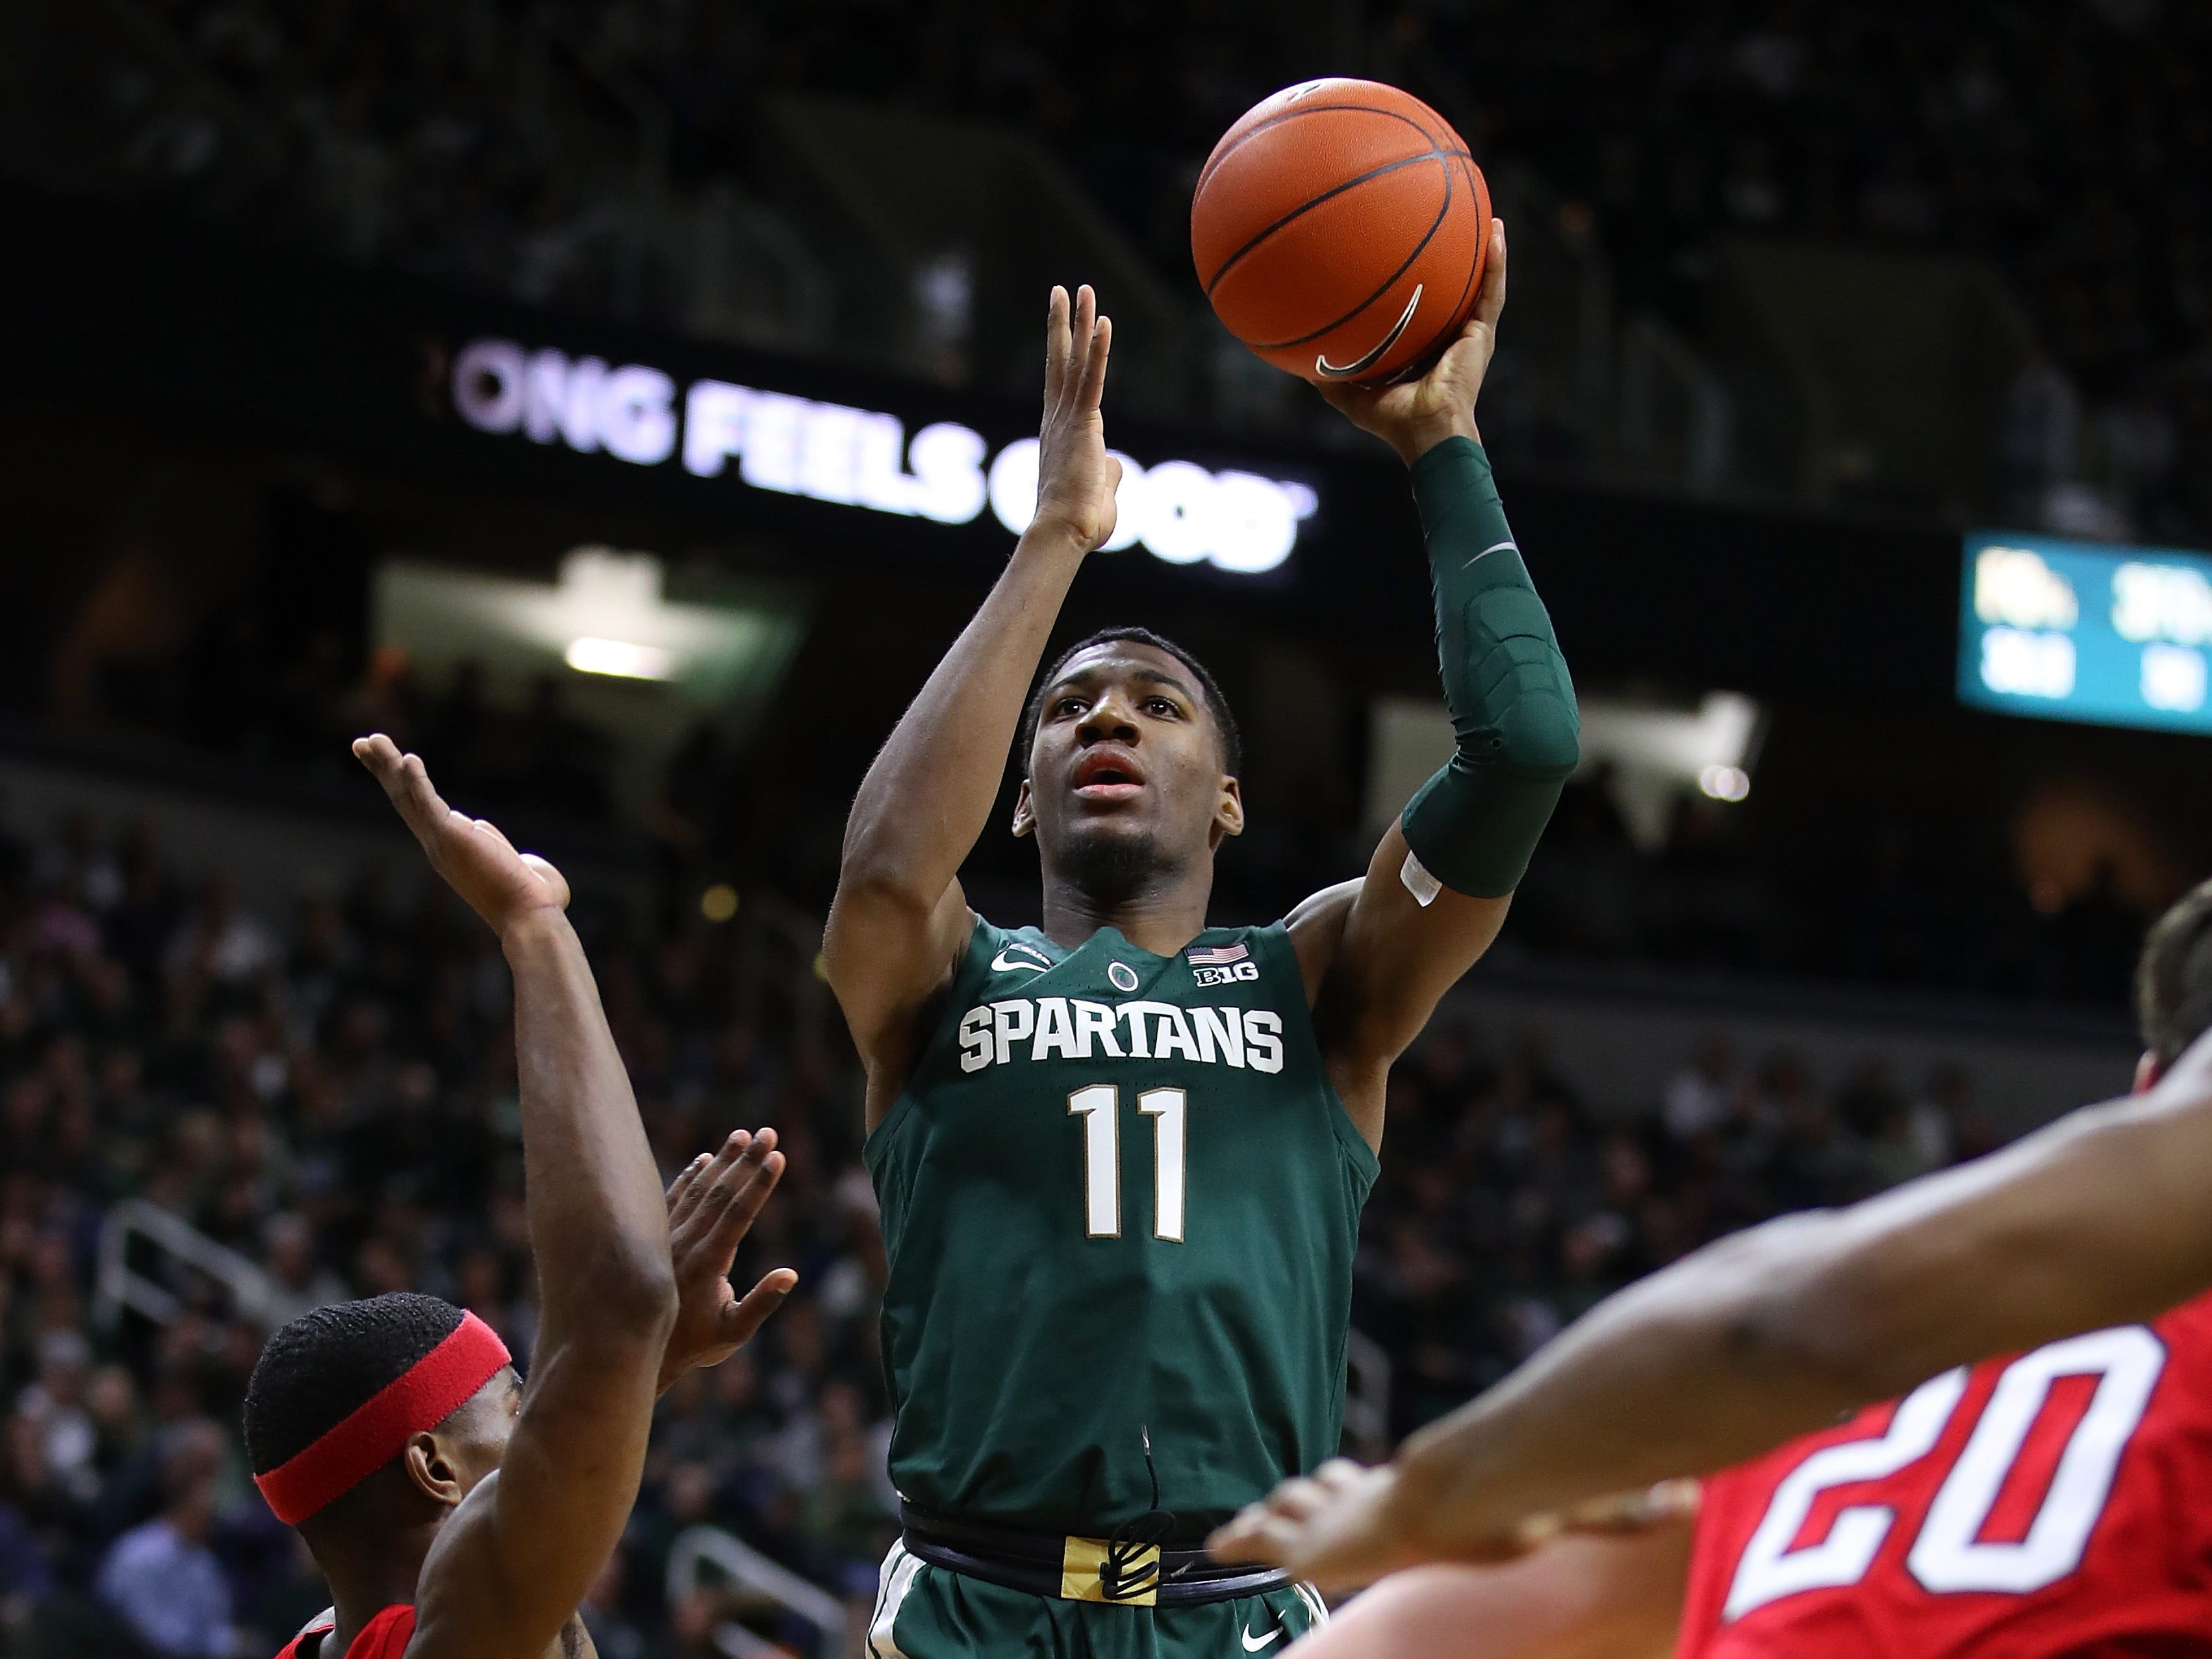 Aaron Henry (1) of the Michigan State Spartans takes a shot over Glynn Watson Jr. (5) of the Nebraska Cornhuskers during the first half at Breslin Center on March 05, 2019 in East Lansing, Michigan.